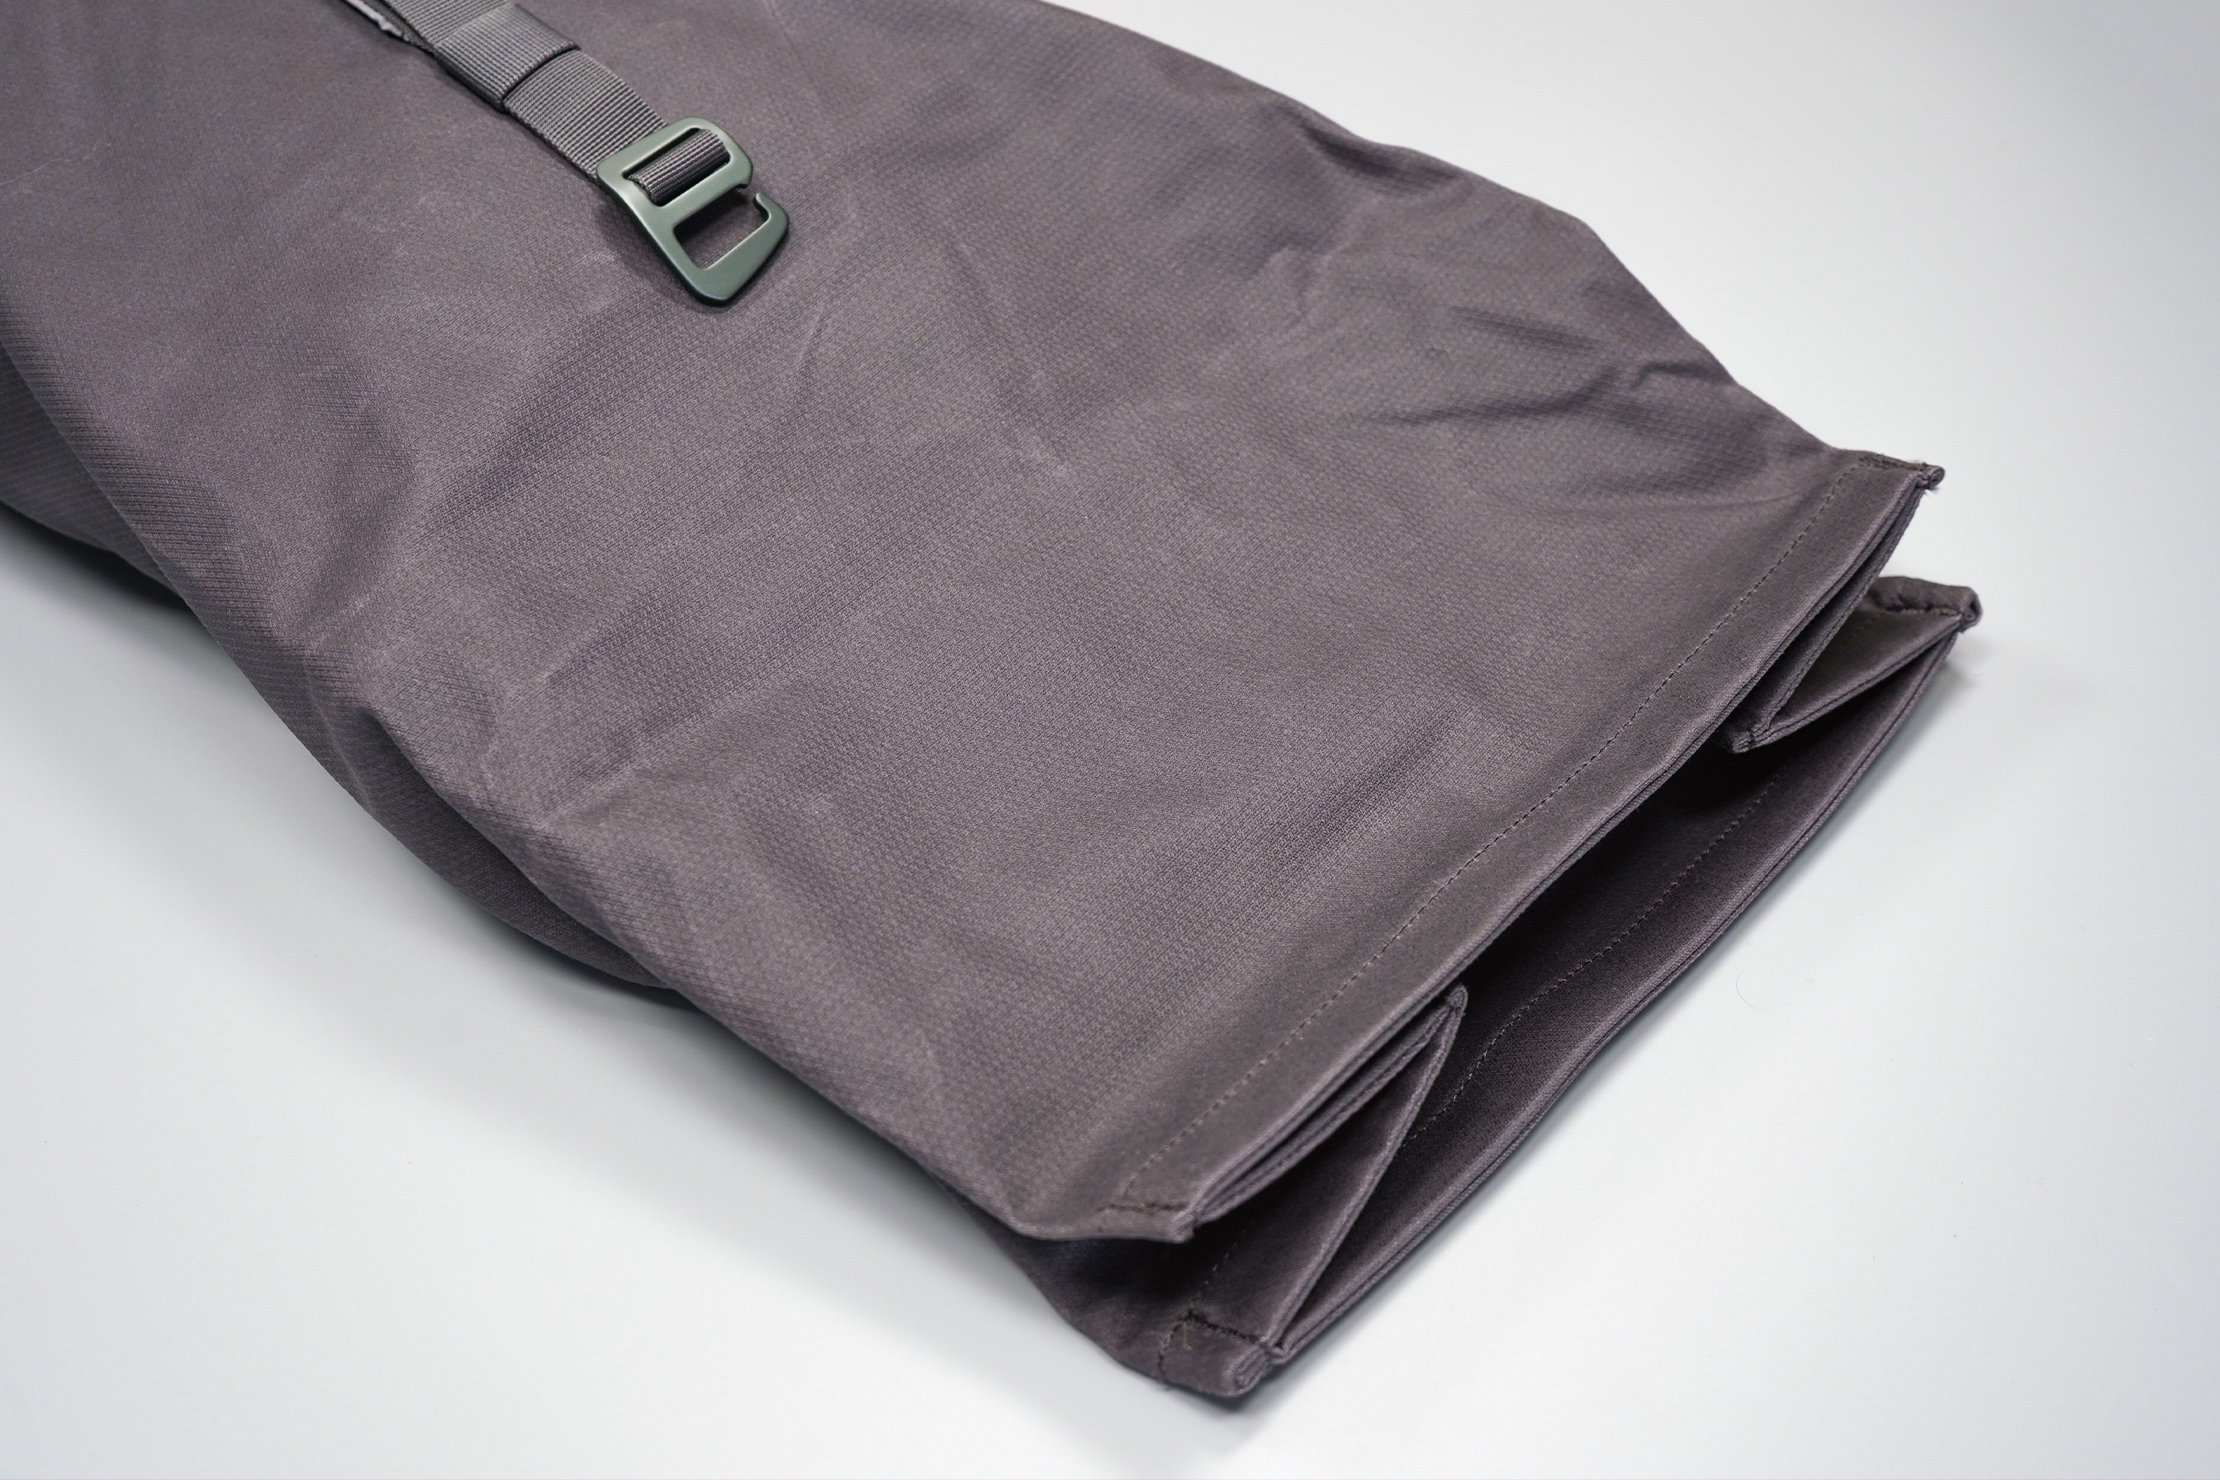 Millican Smith Roll Pack 18L   The top roll unfurled